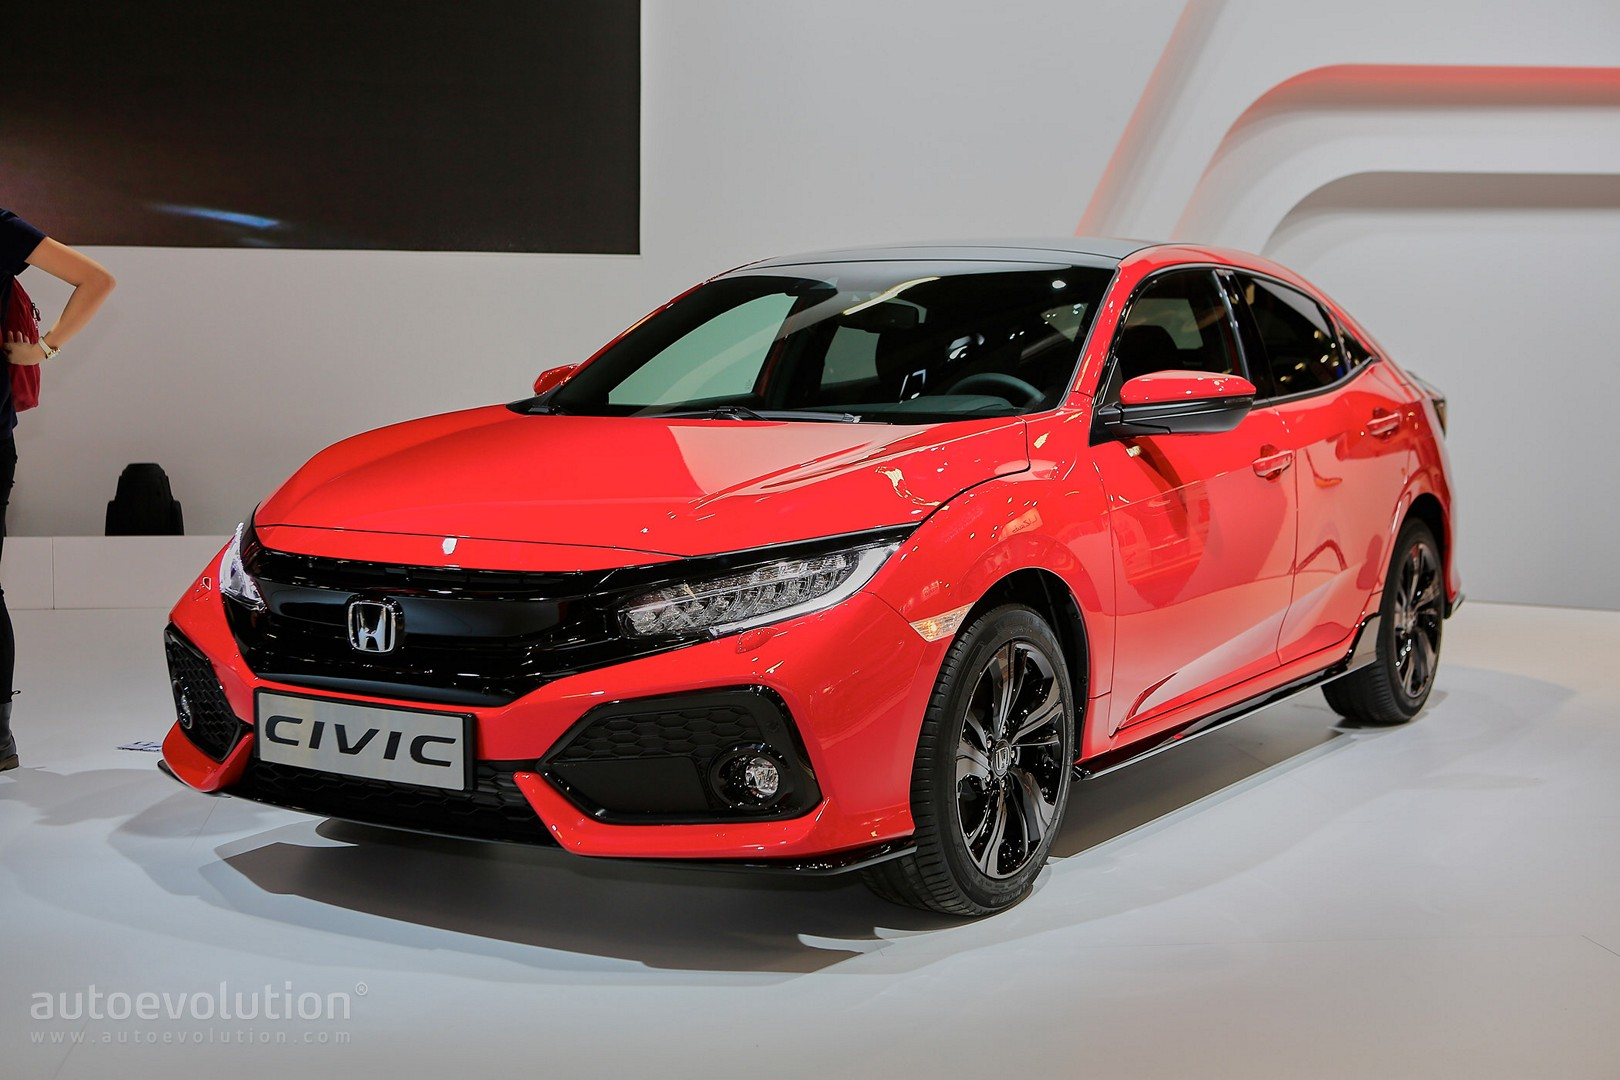 2017-honda-civic-hatchback-looks-like-a-race-car-in-paris-111699_1